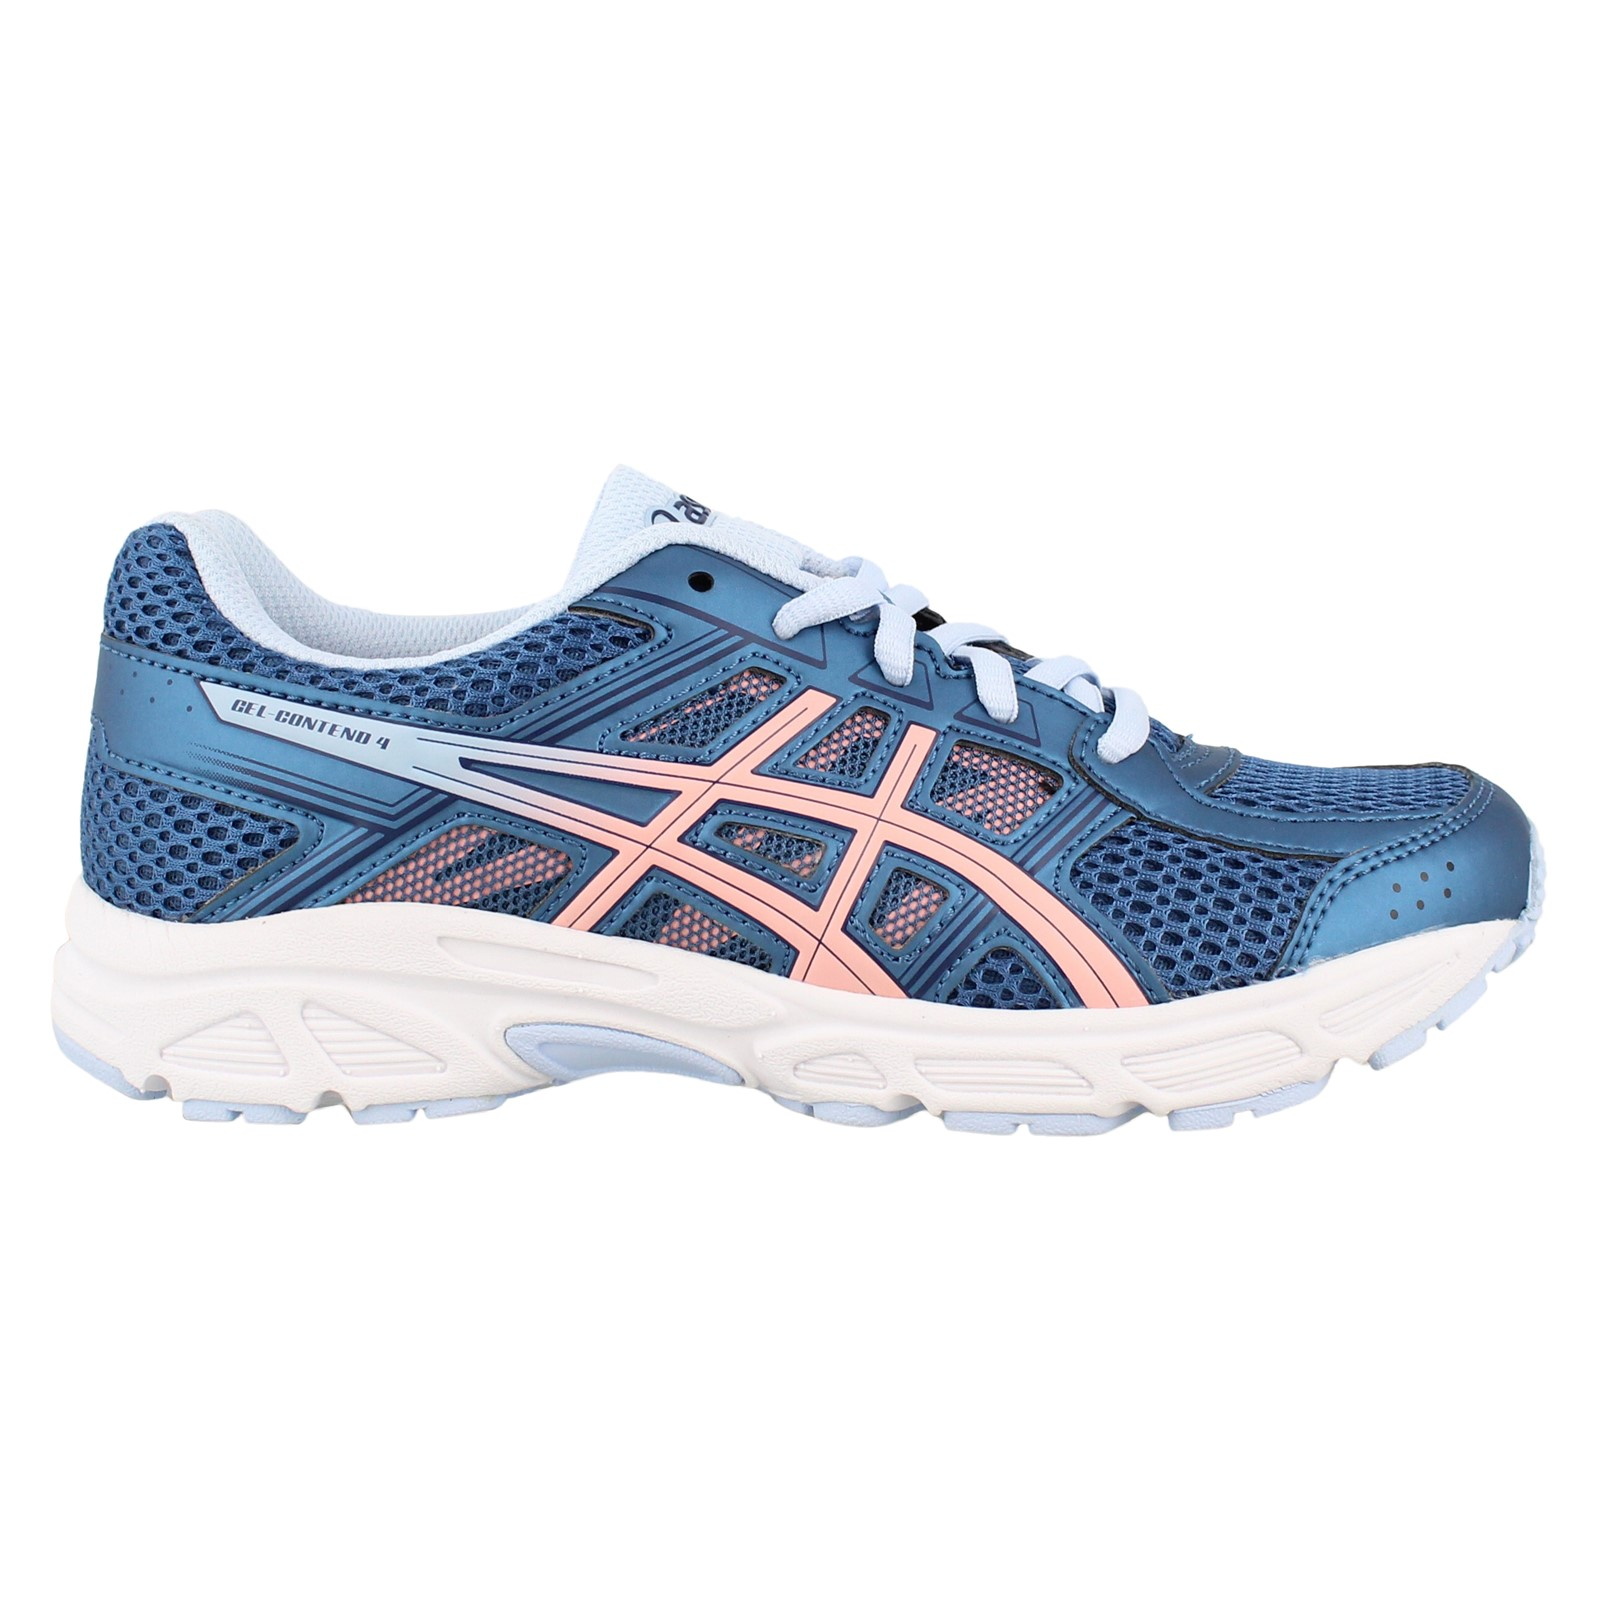 Girl's Asics, Gel Contend 4 GS Running Sneakers